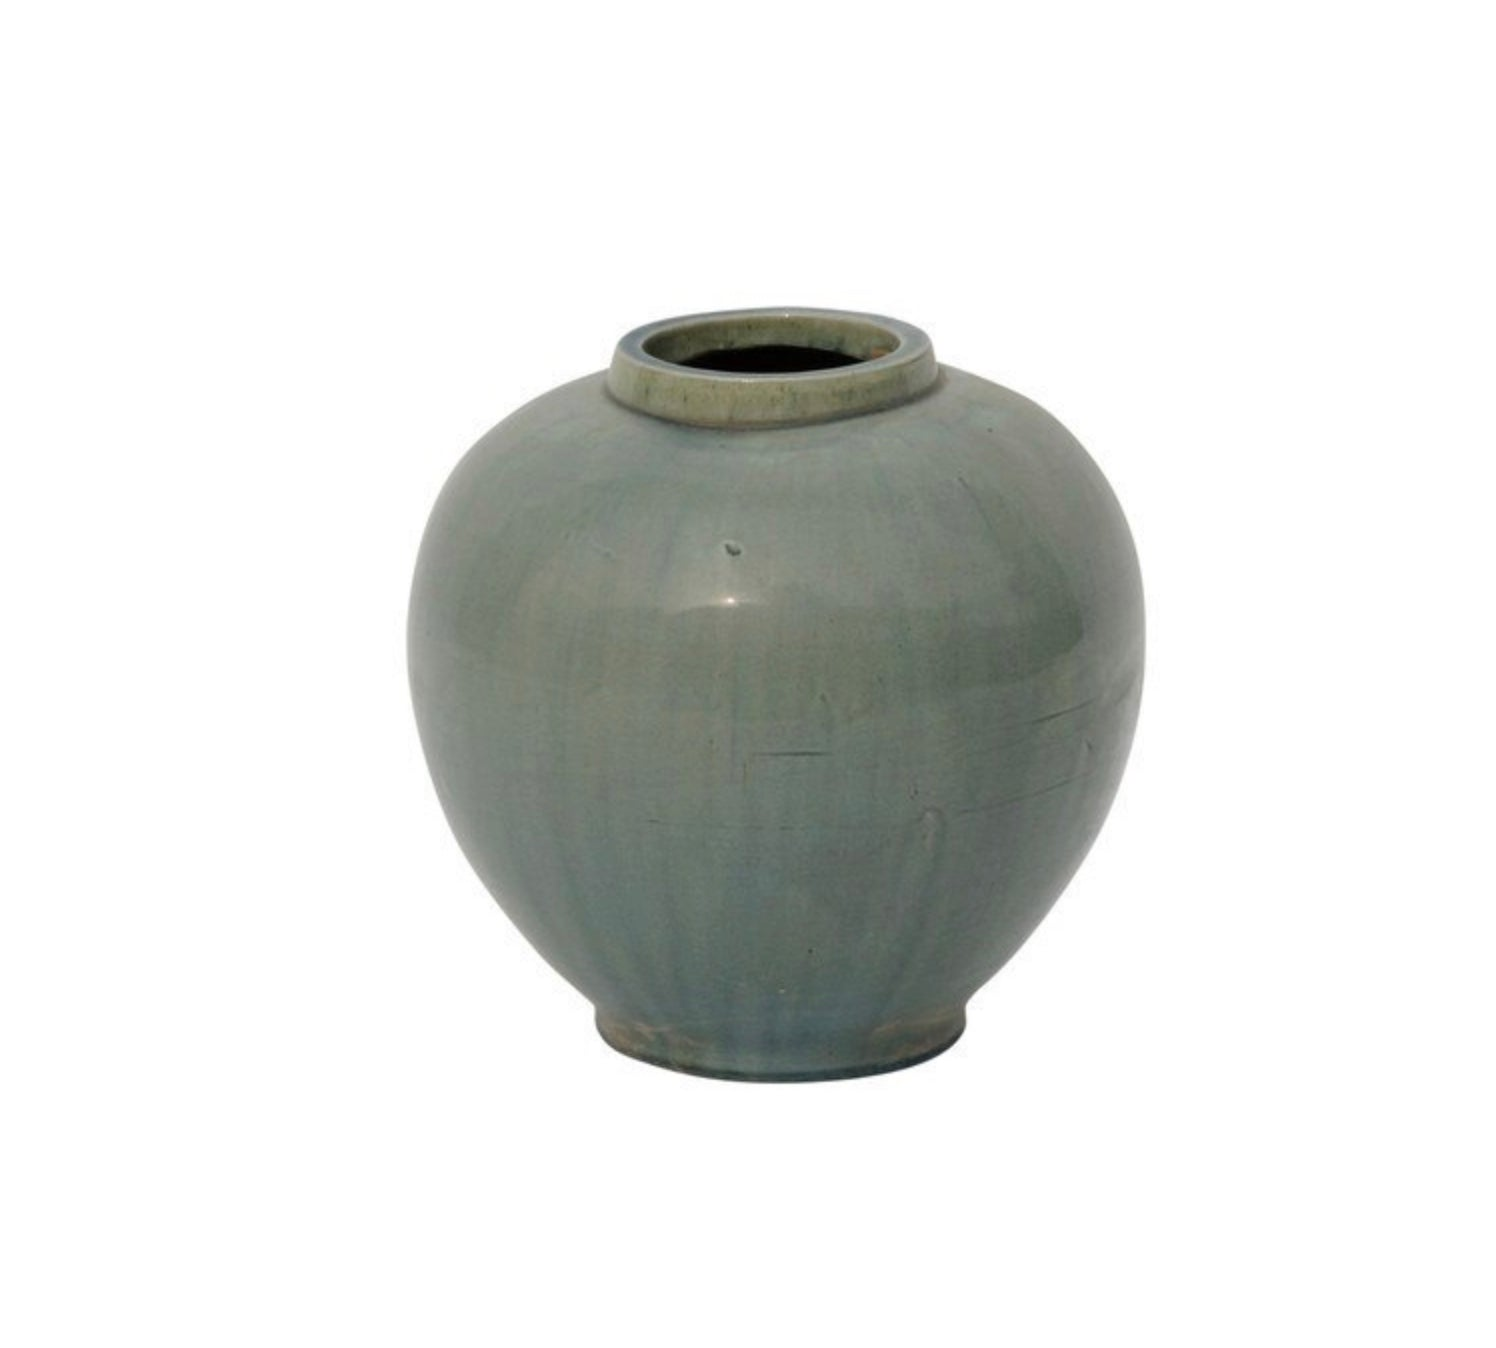 Vintage Green Apple Pot - Amy Berry Home